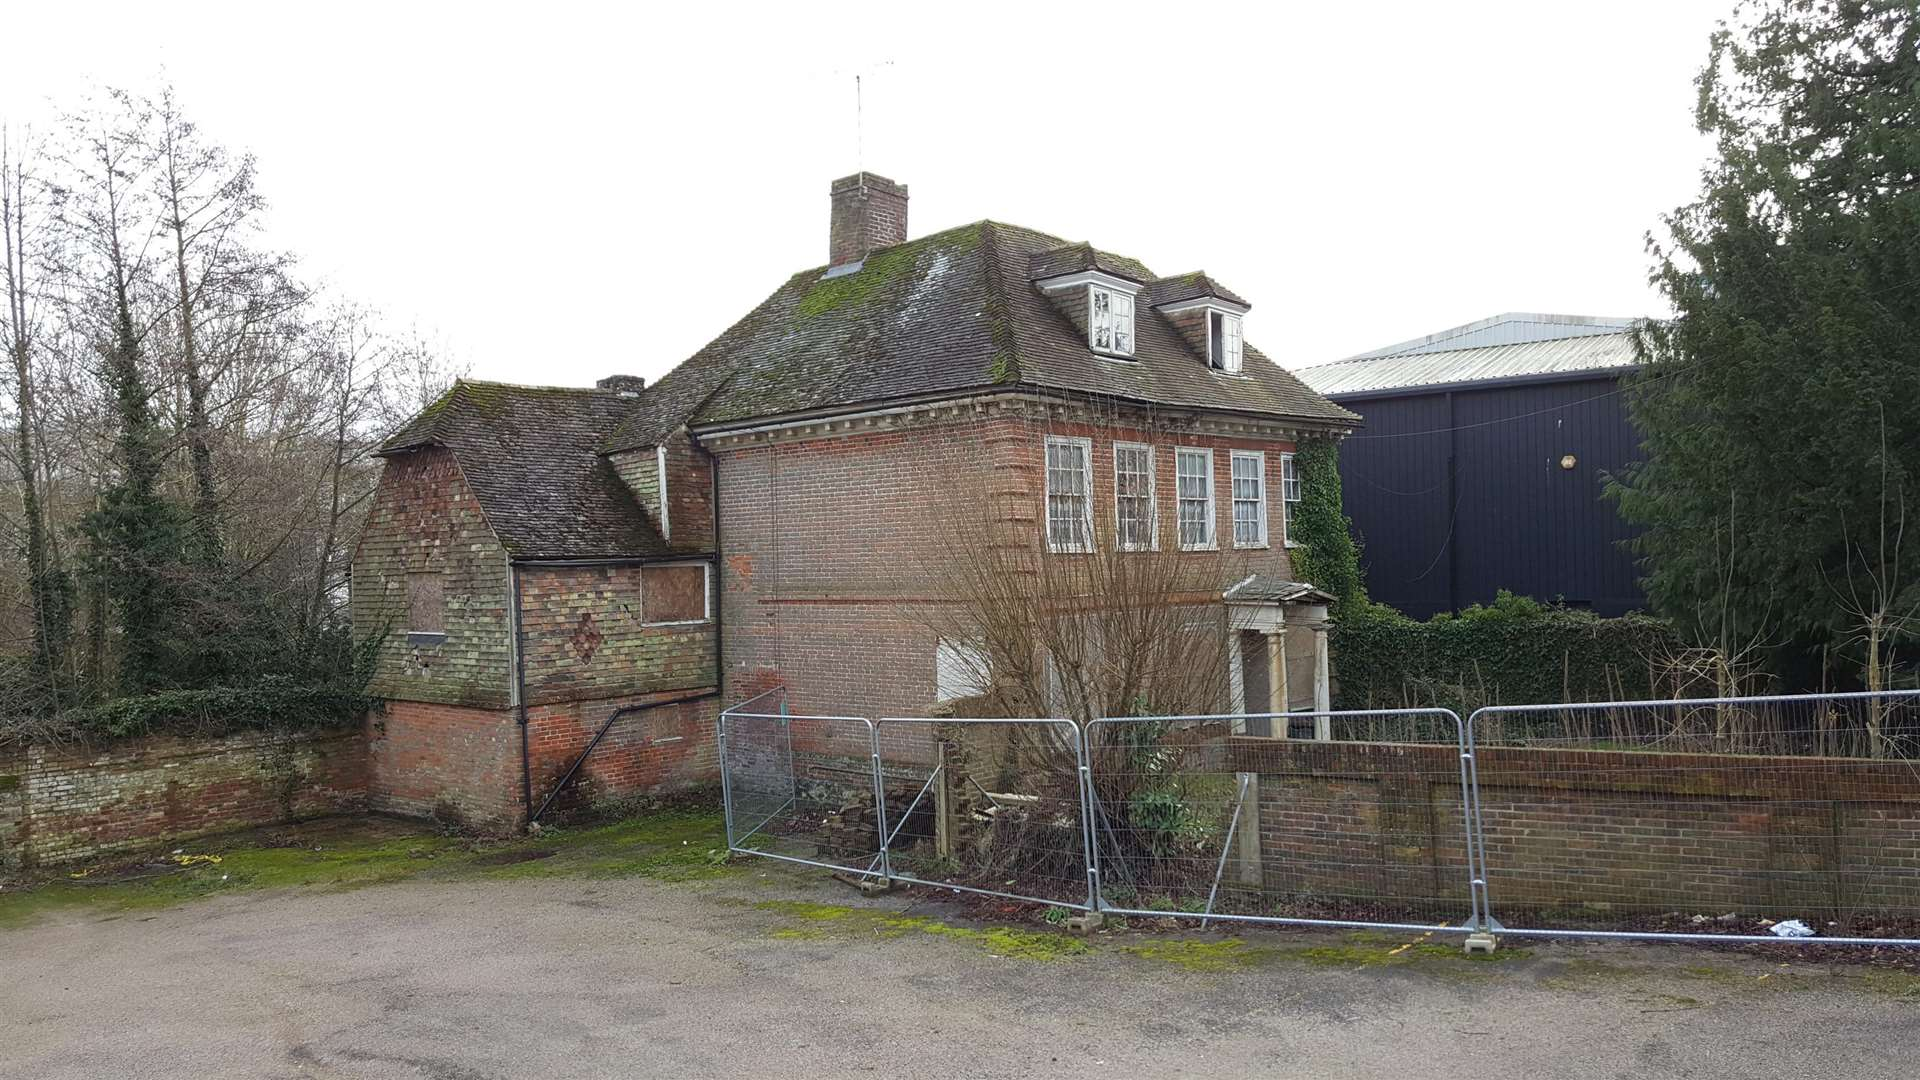 Whist House as it looks today.